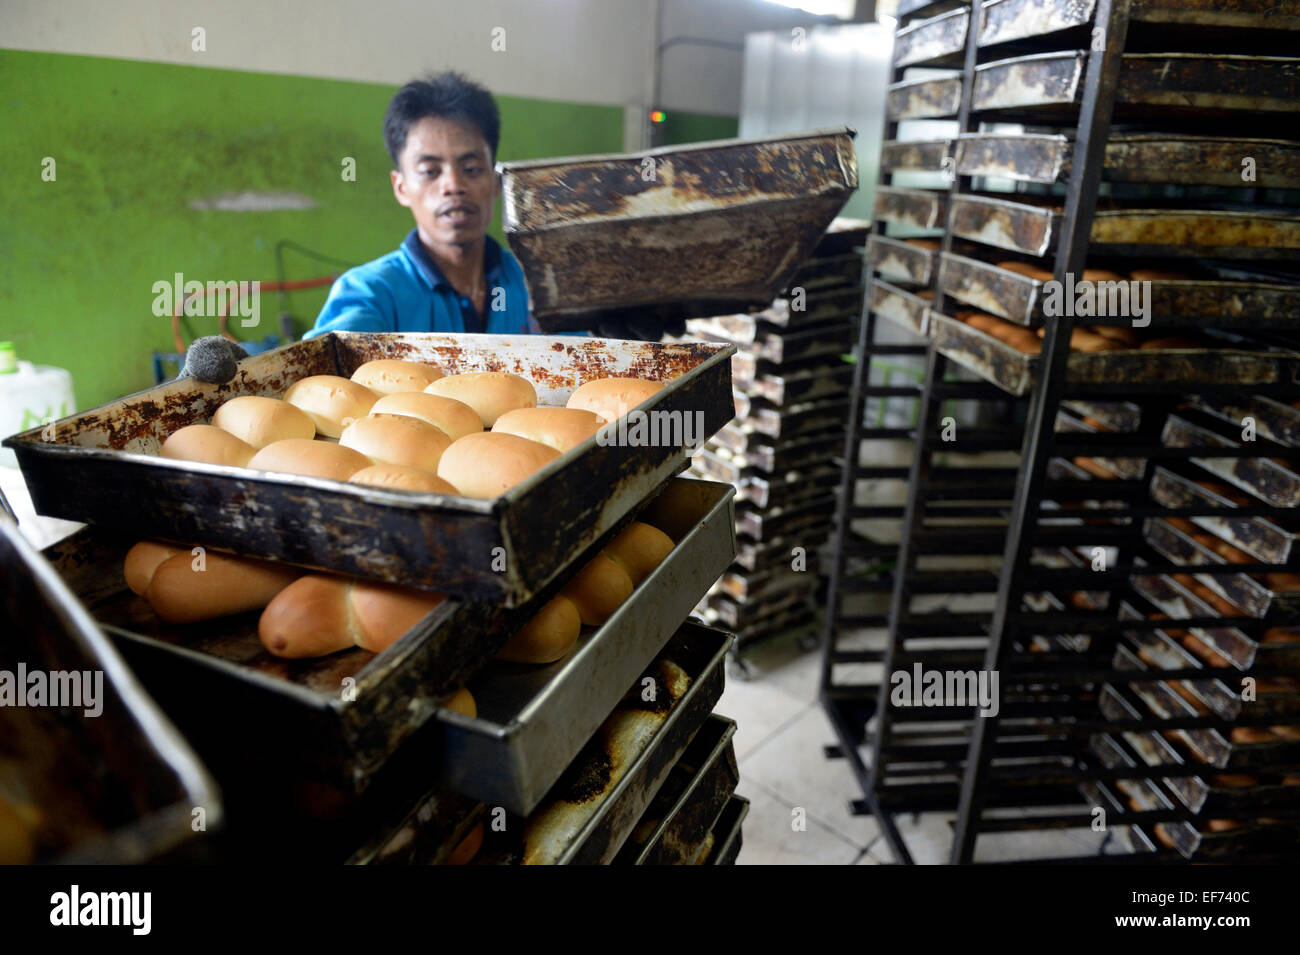 Young man in a bakery taking bread out of the oven, Gampong Nusa, Aceh province, Indonesia - Stock Image